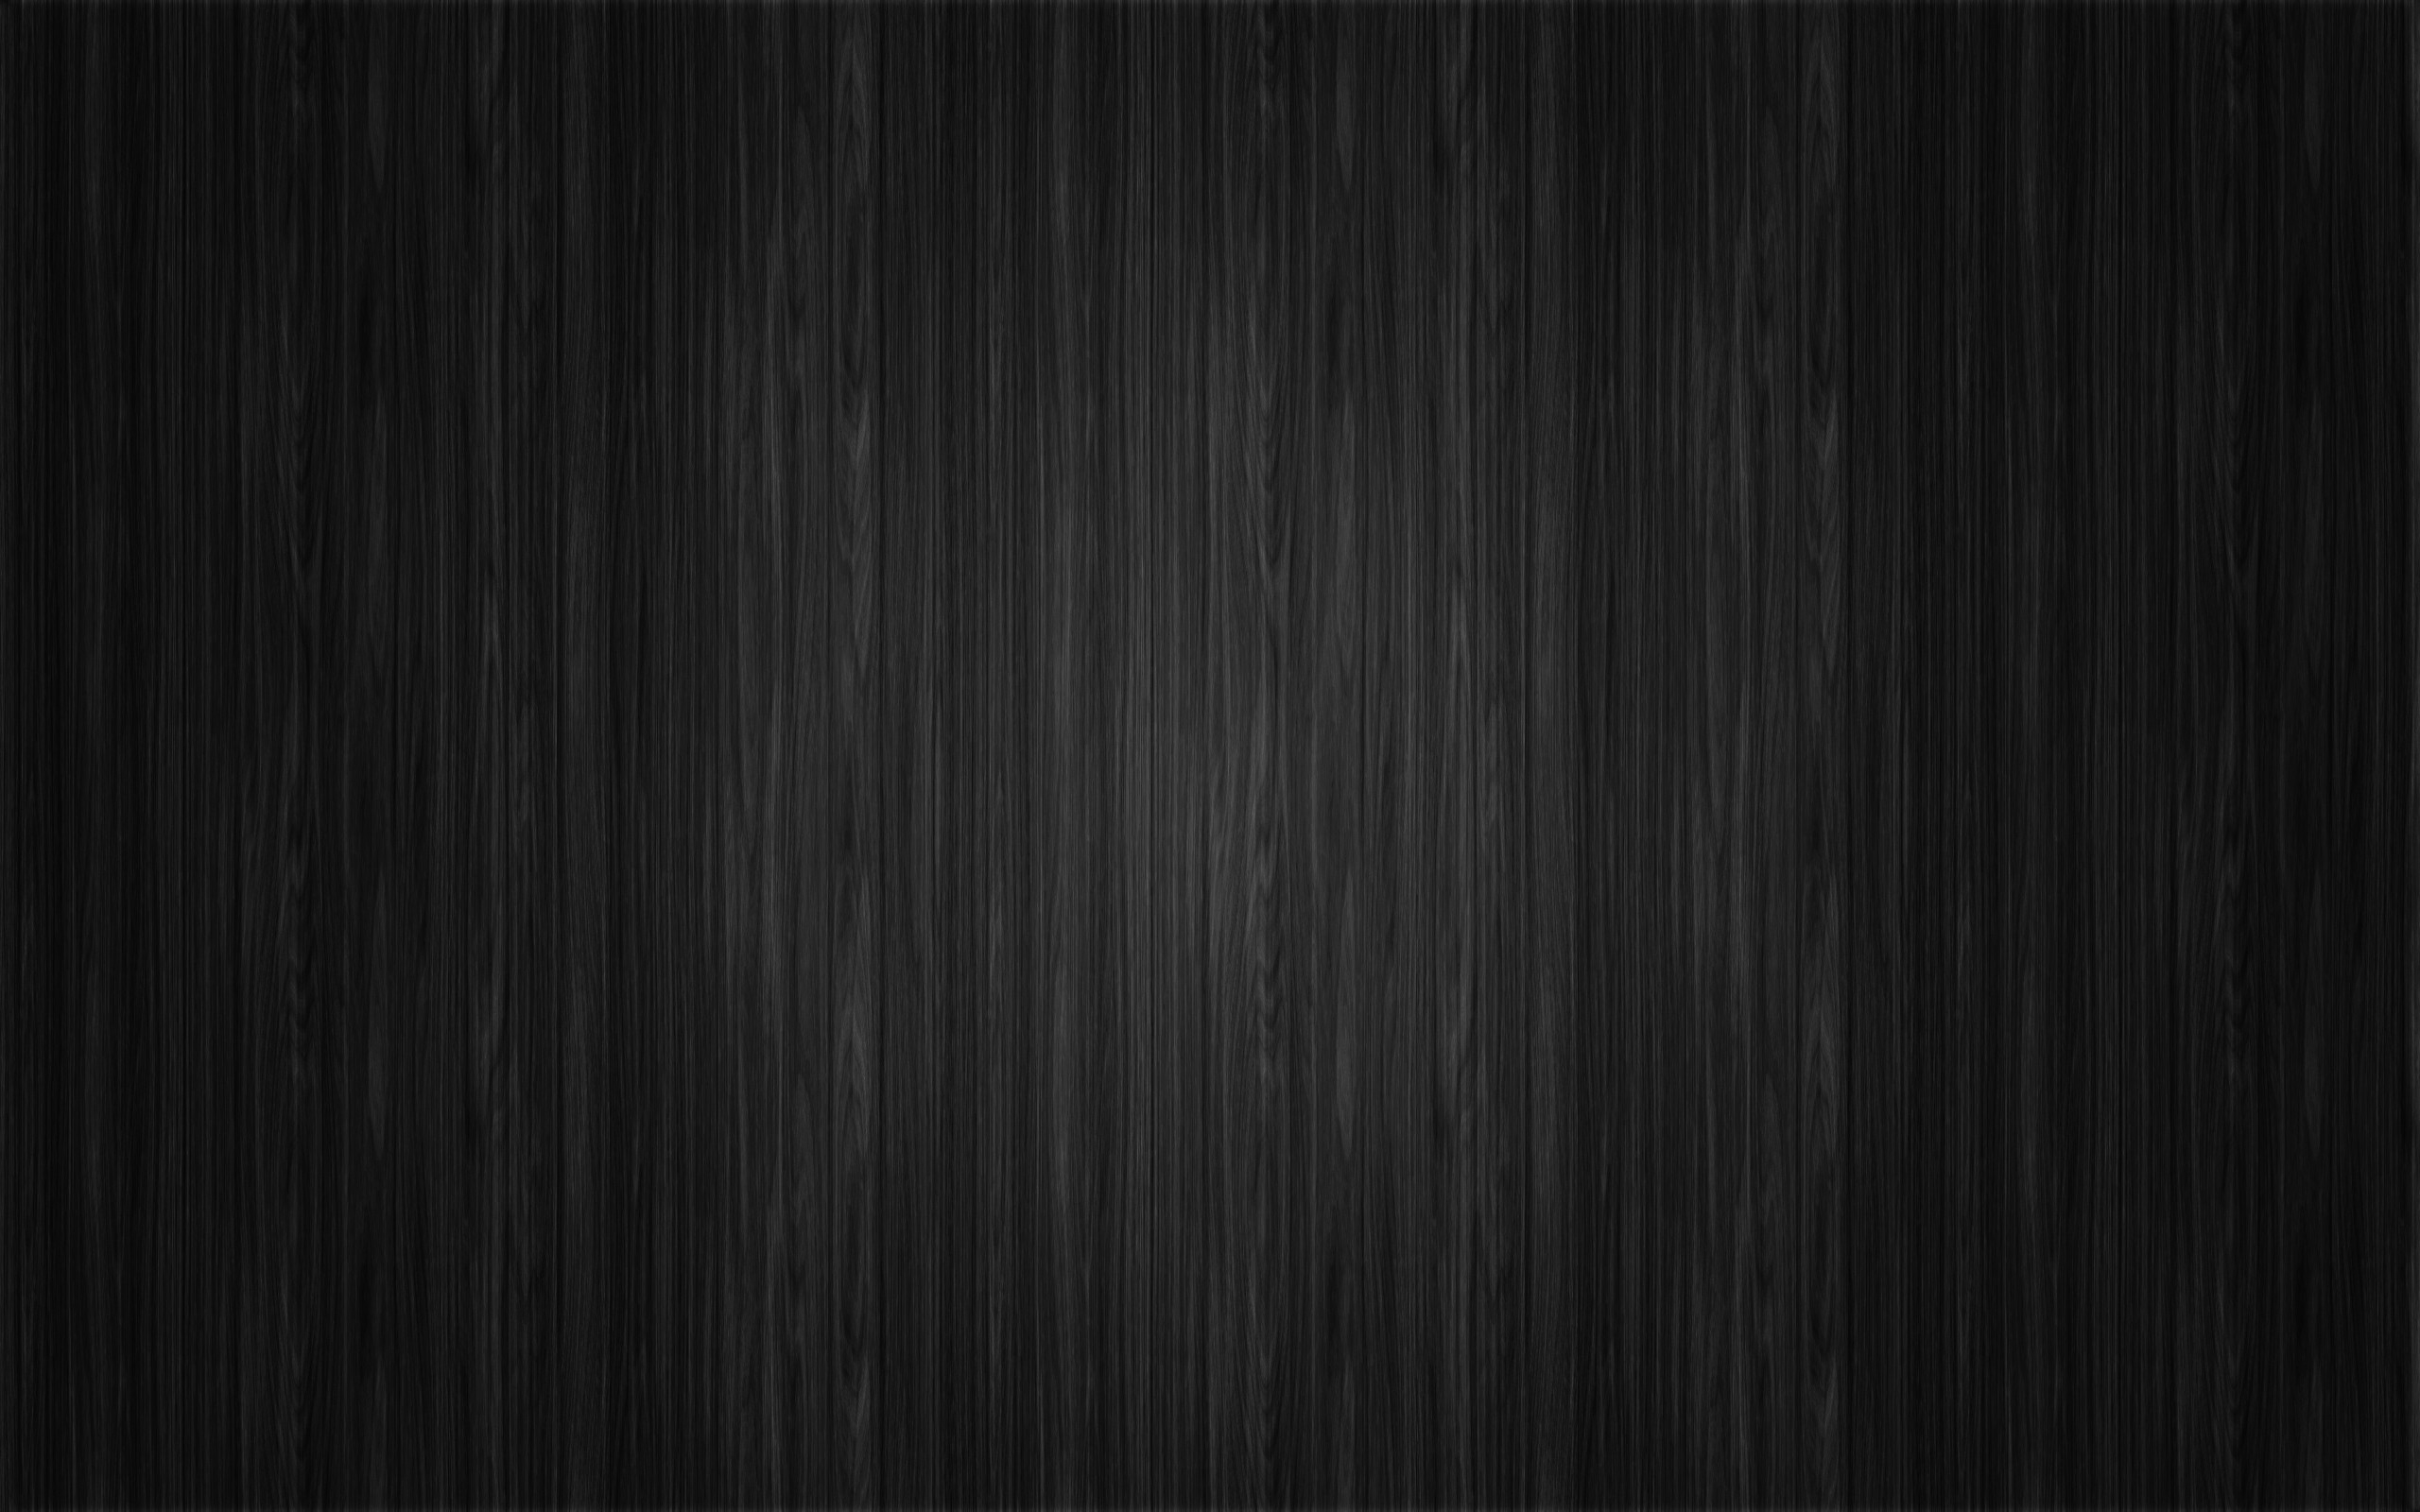 Black abstract background download free cool full hd - Black abstract background ...